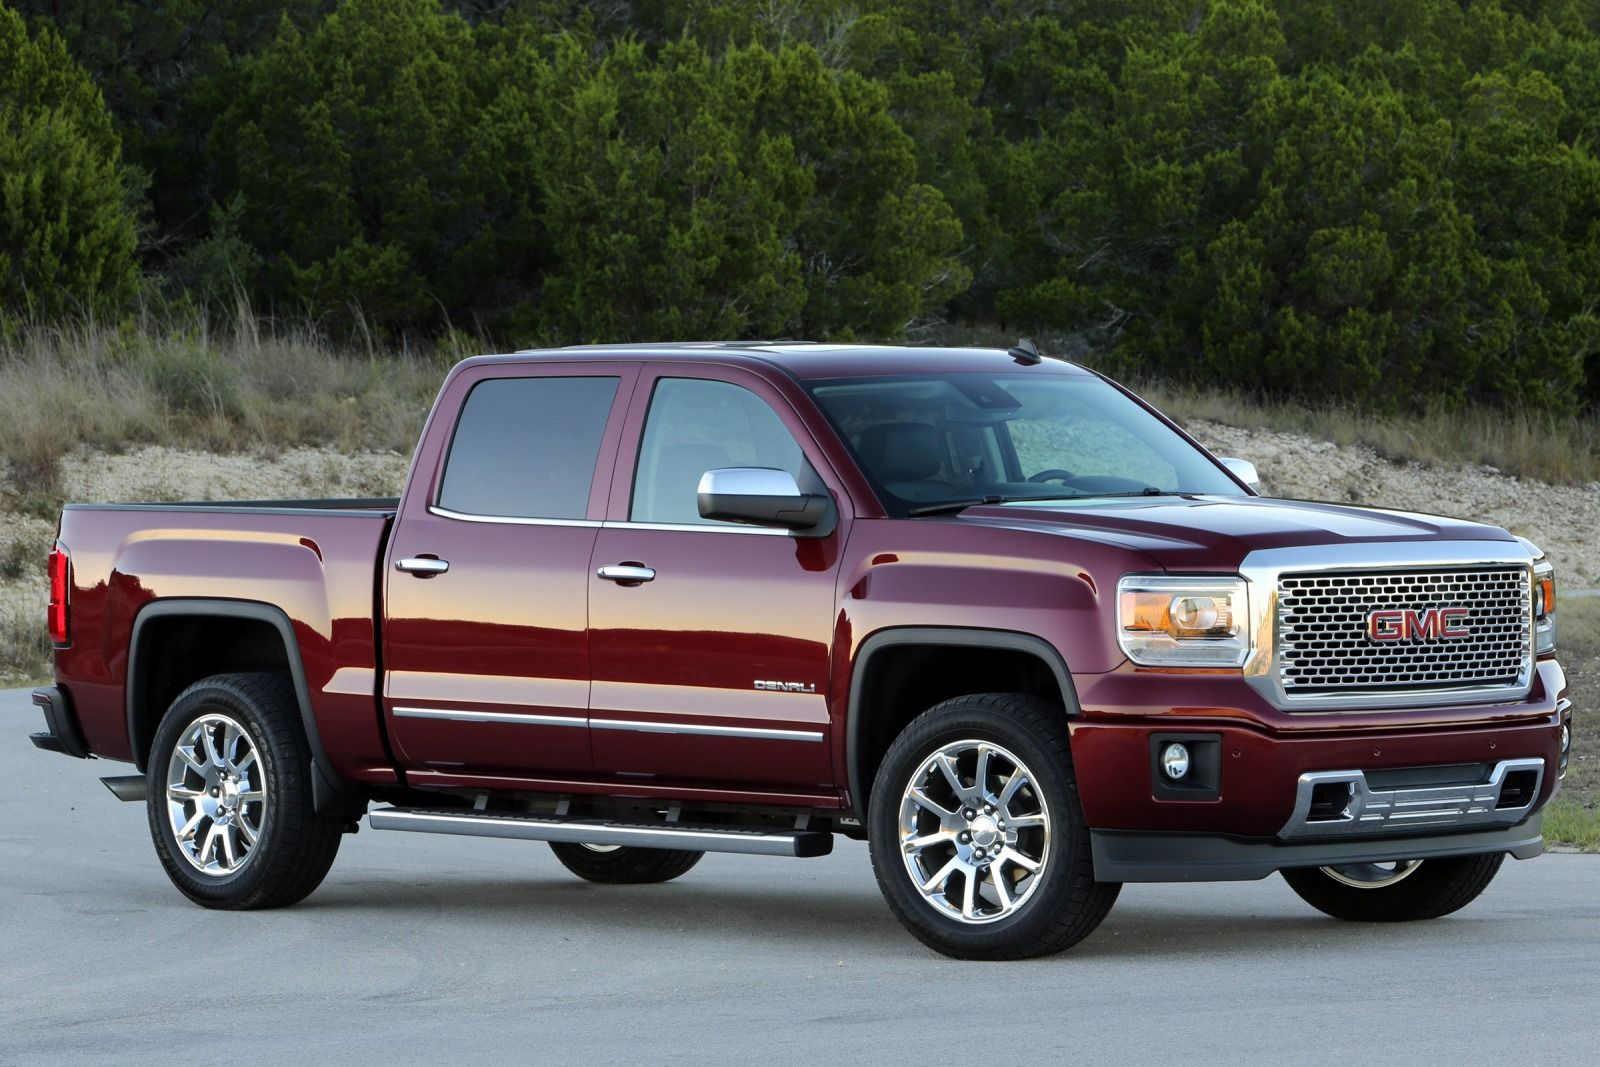 2018 GMC Sierra Denali 1500 Crew Cab photo - 2